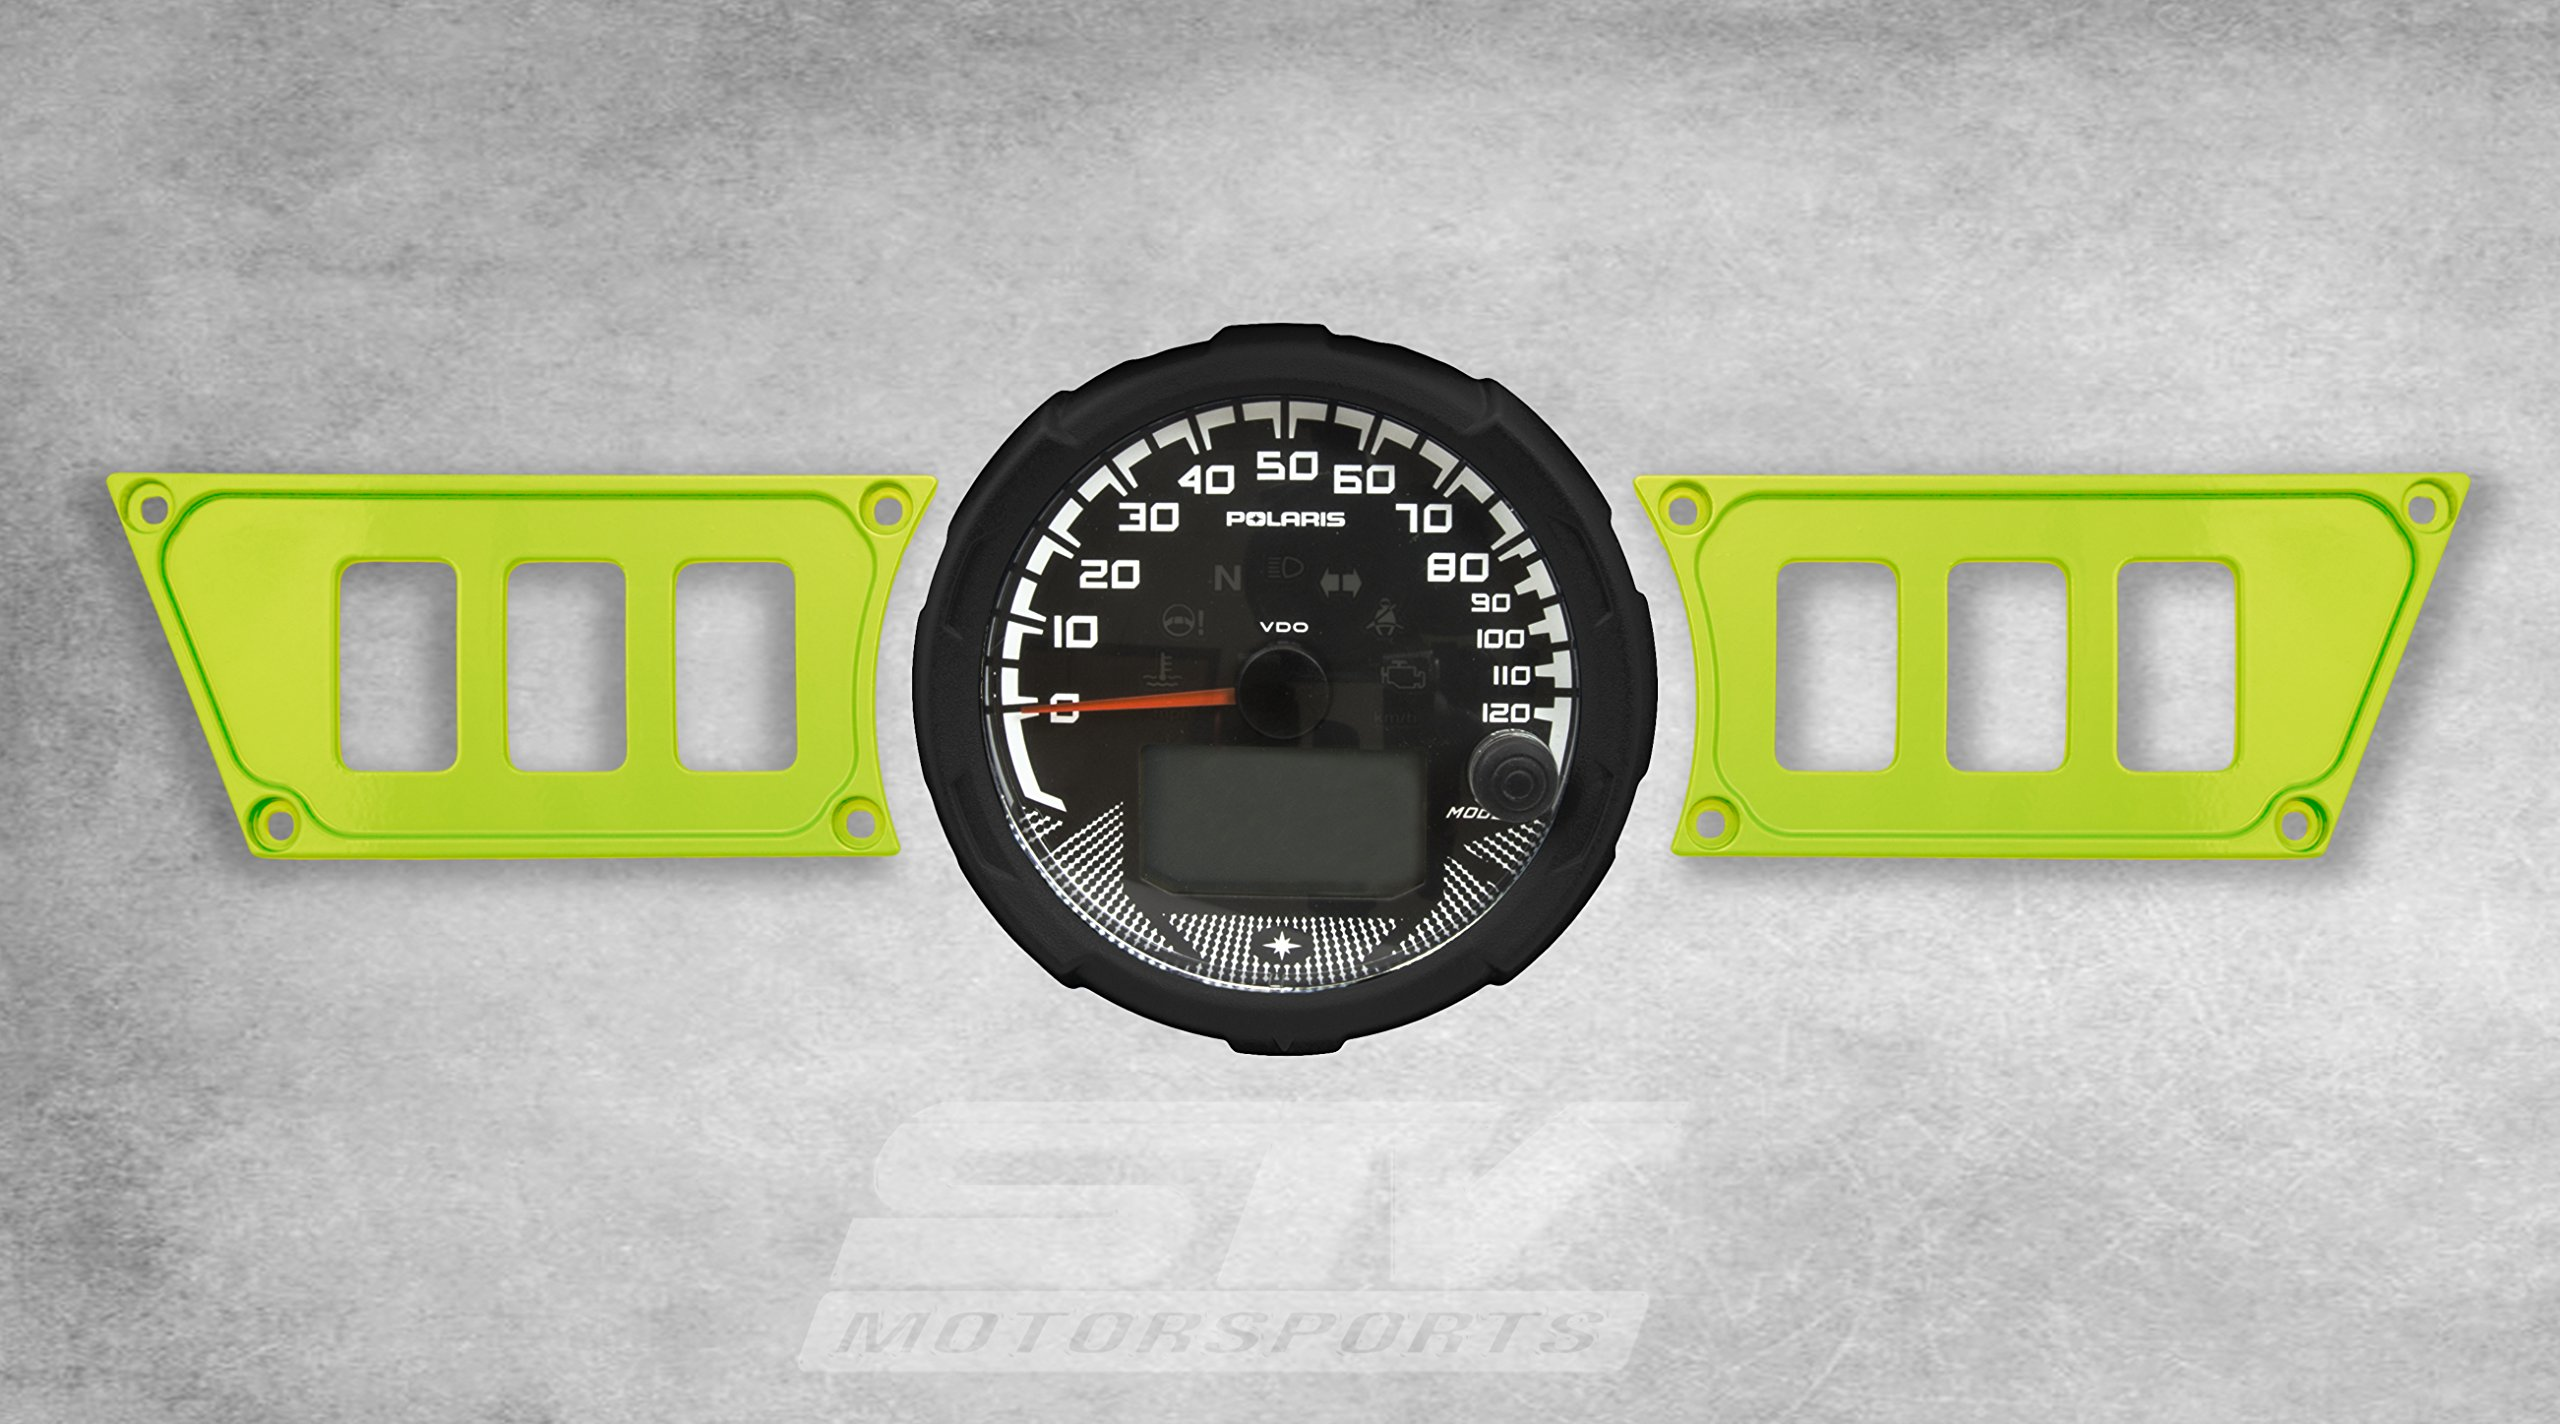 STV Motorsports Custom Aluminum Dash Panel for Polaris RZR XP 1000 with 6 Switch Openings (no switches included) (Lime)